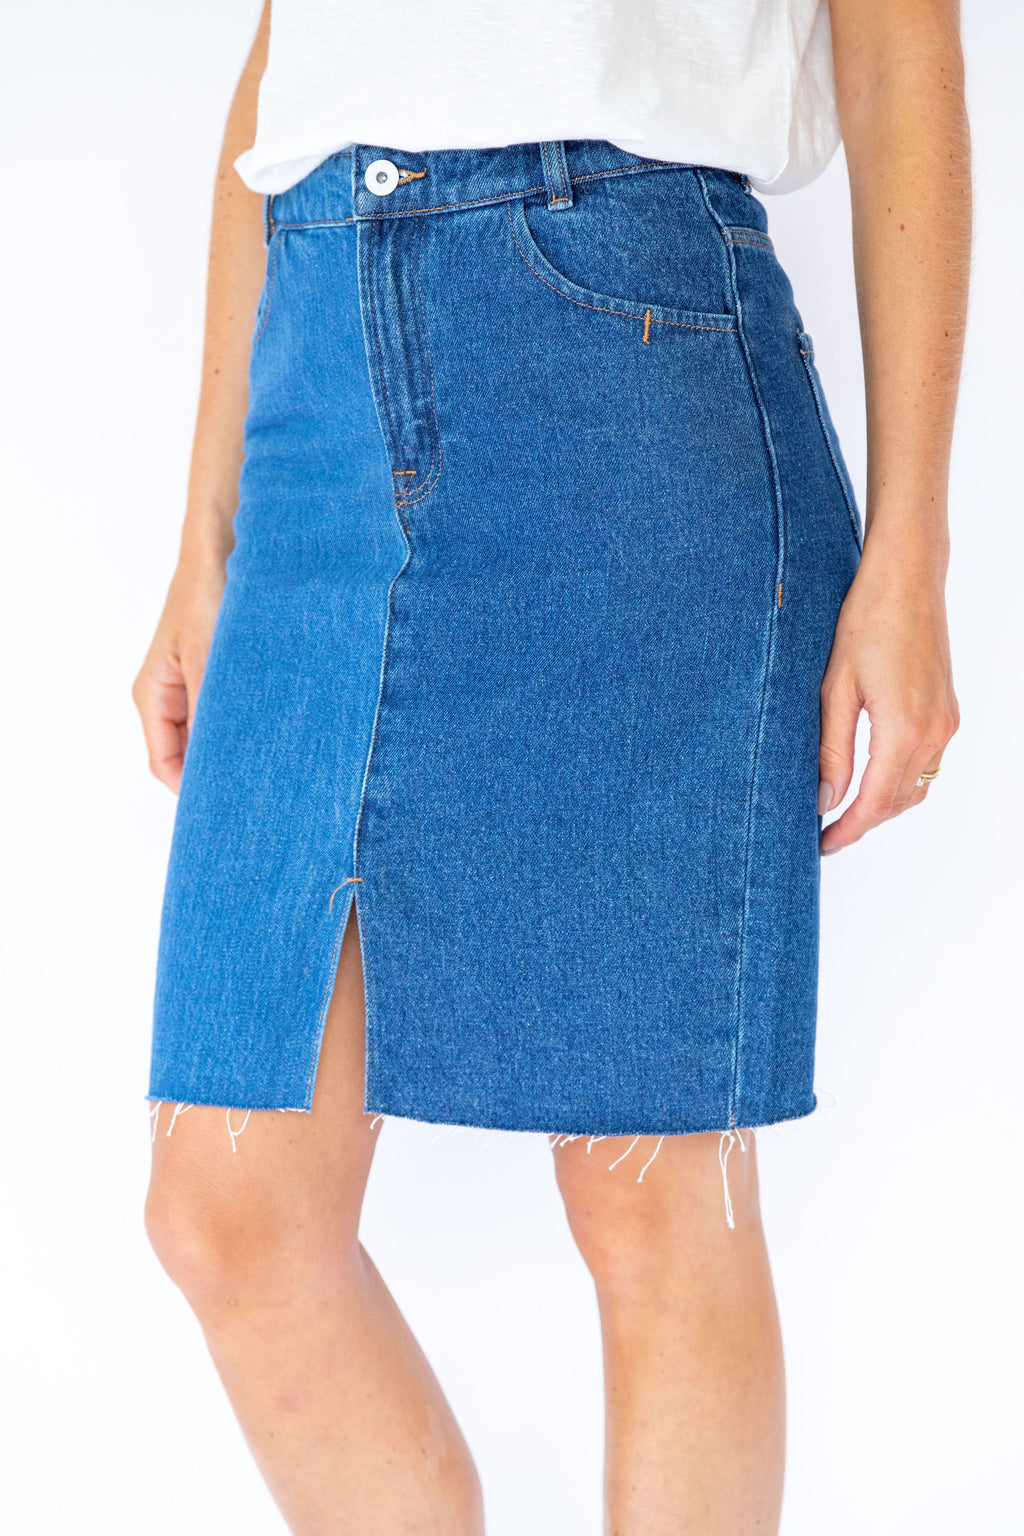 Ichi Gasto Denim Pencil Skirt